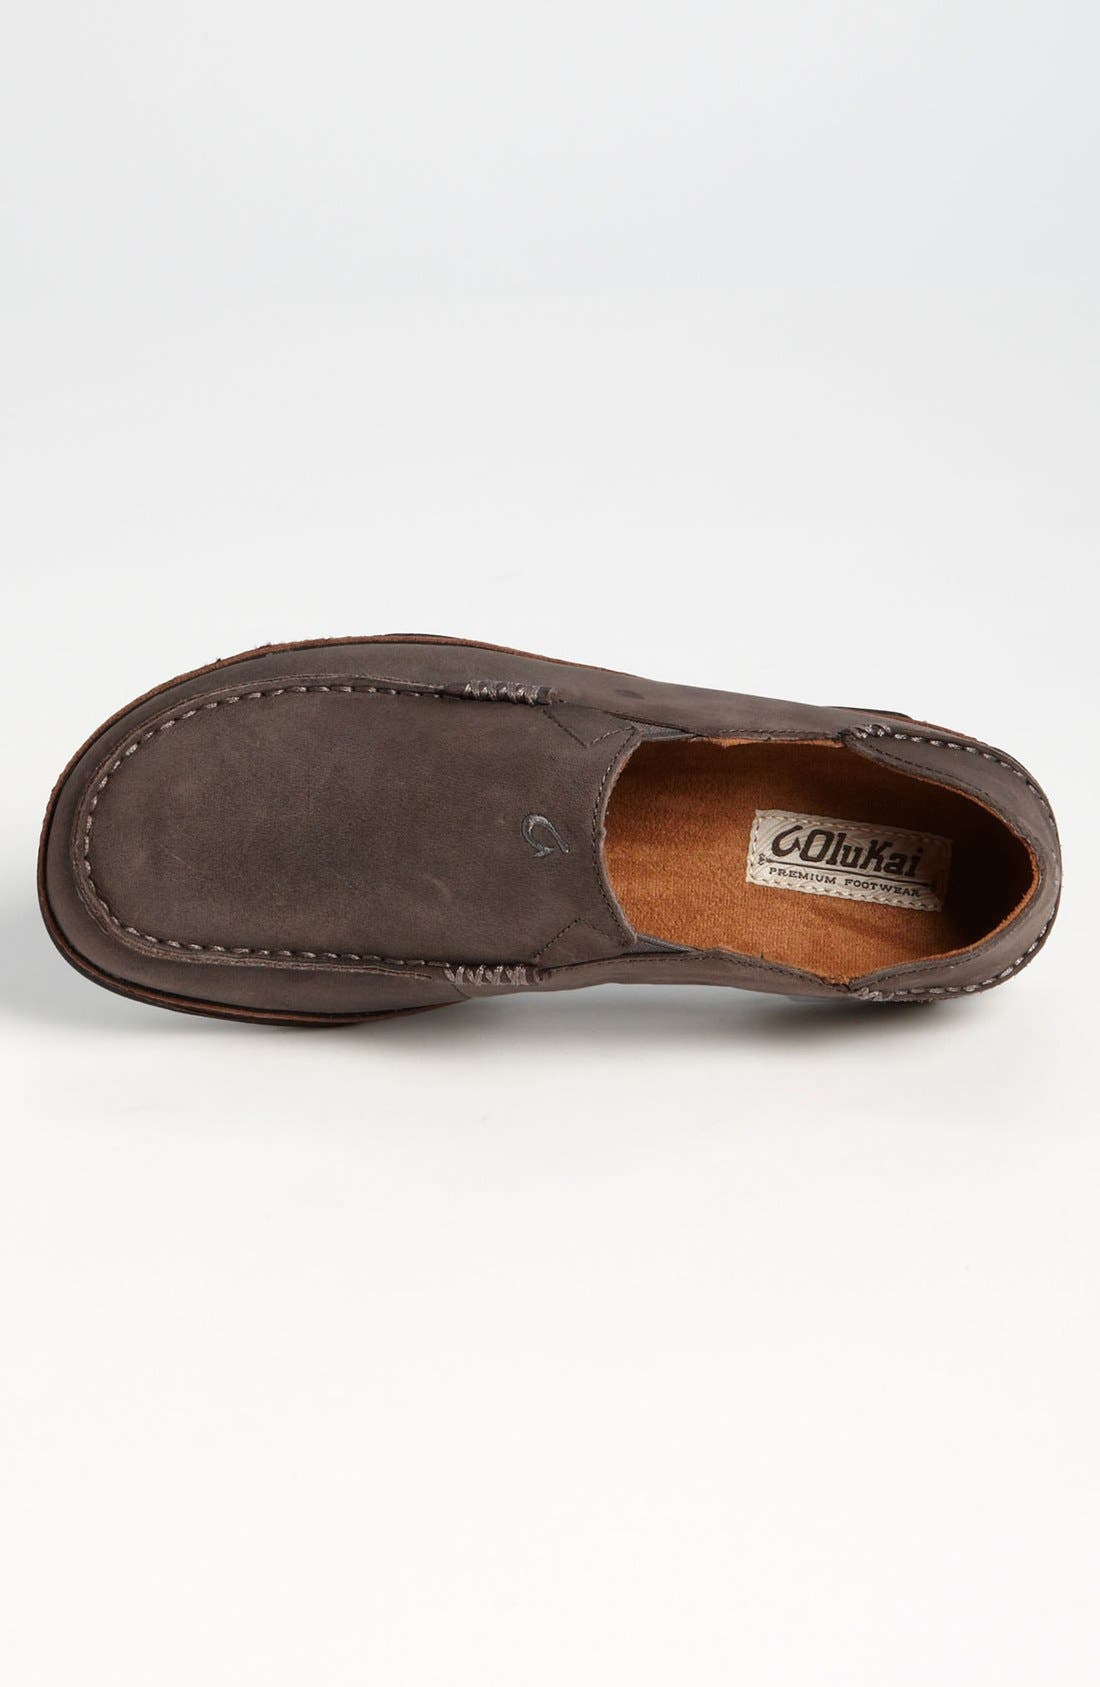 Moloa Slip-On,                             Alternate thumbnail 4, color,                             STORM GREY/ DARK WOOD